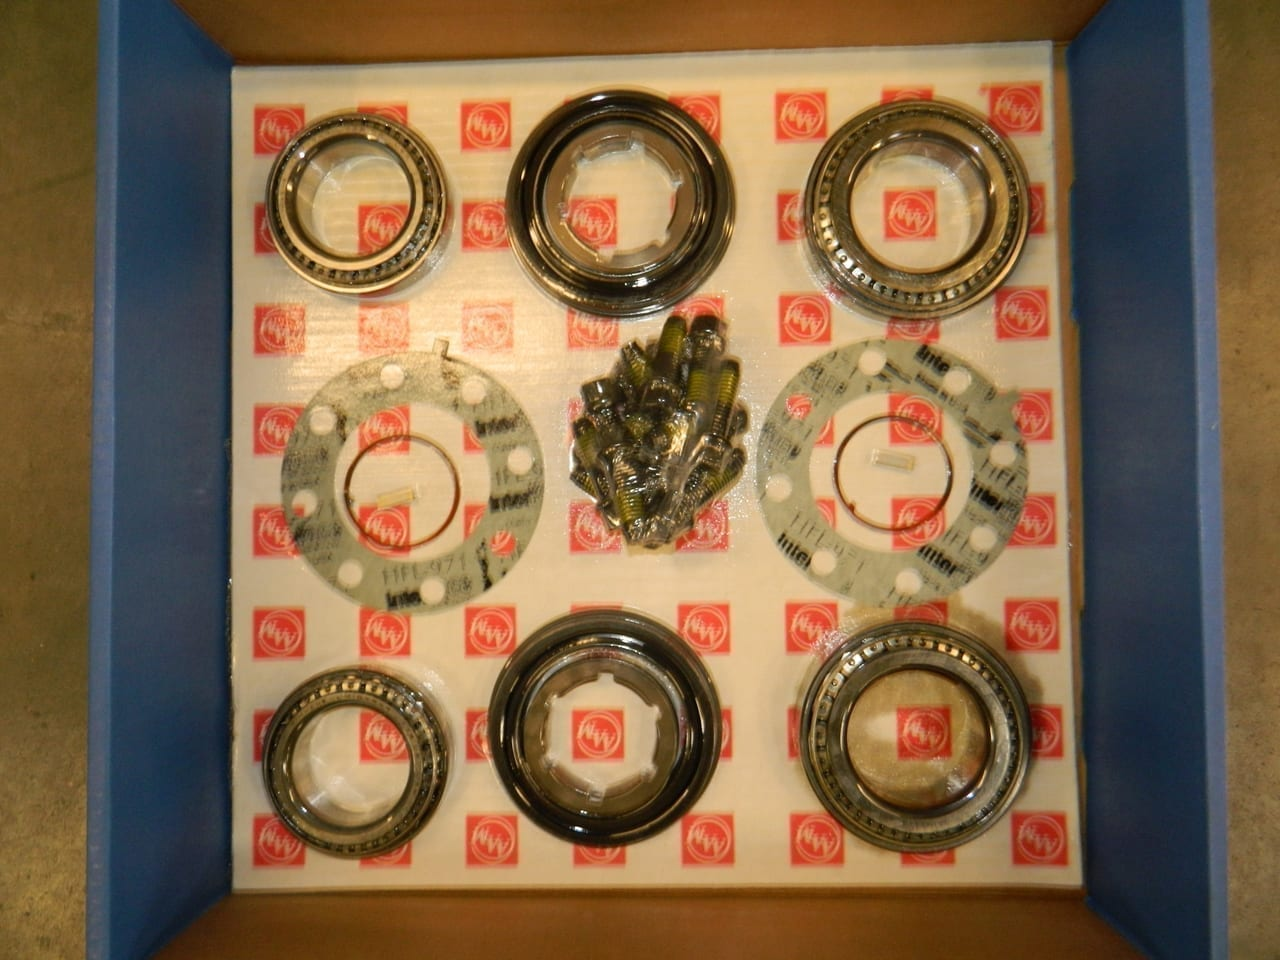 C10.5/11.5 Rear Axle Wheel Hub Bearing Kit Single Rear Wheel 2003+ Dodge 2500 3500 AAM 10.5 and 11.5